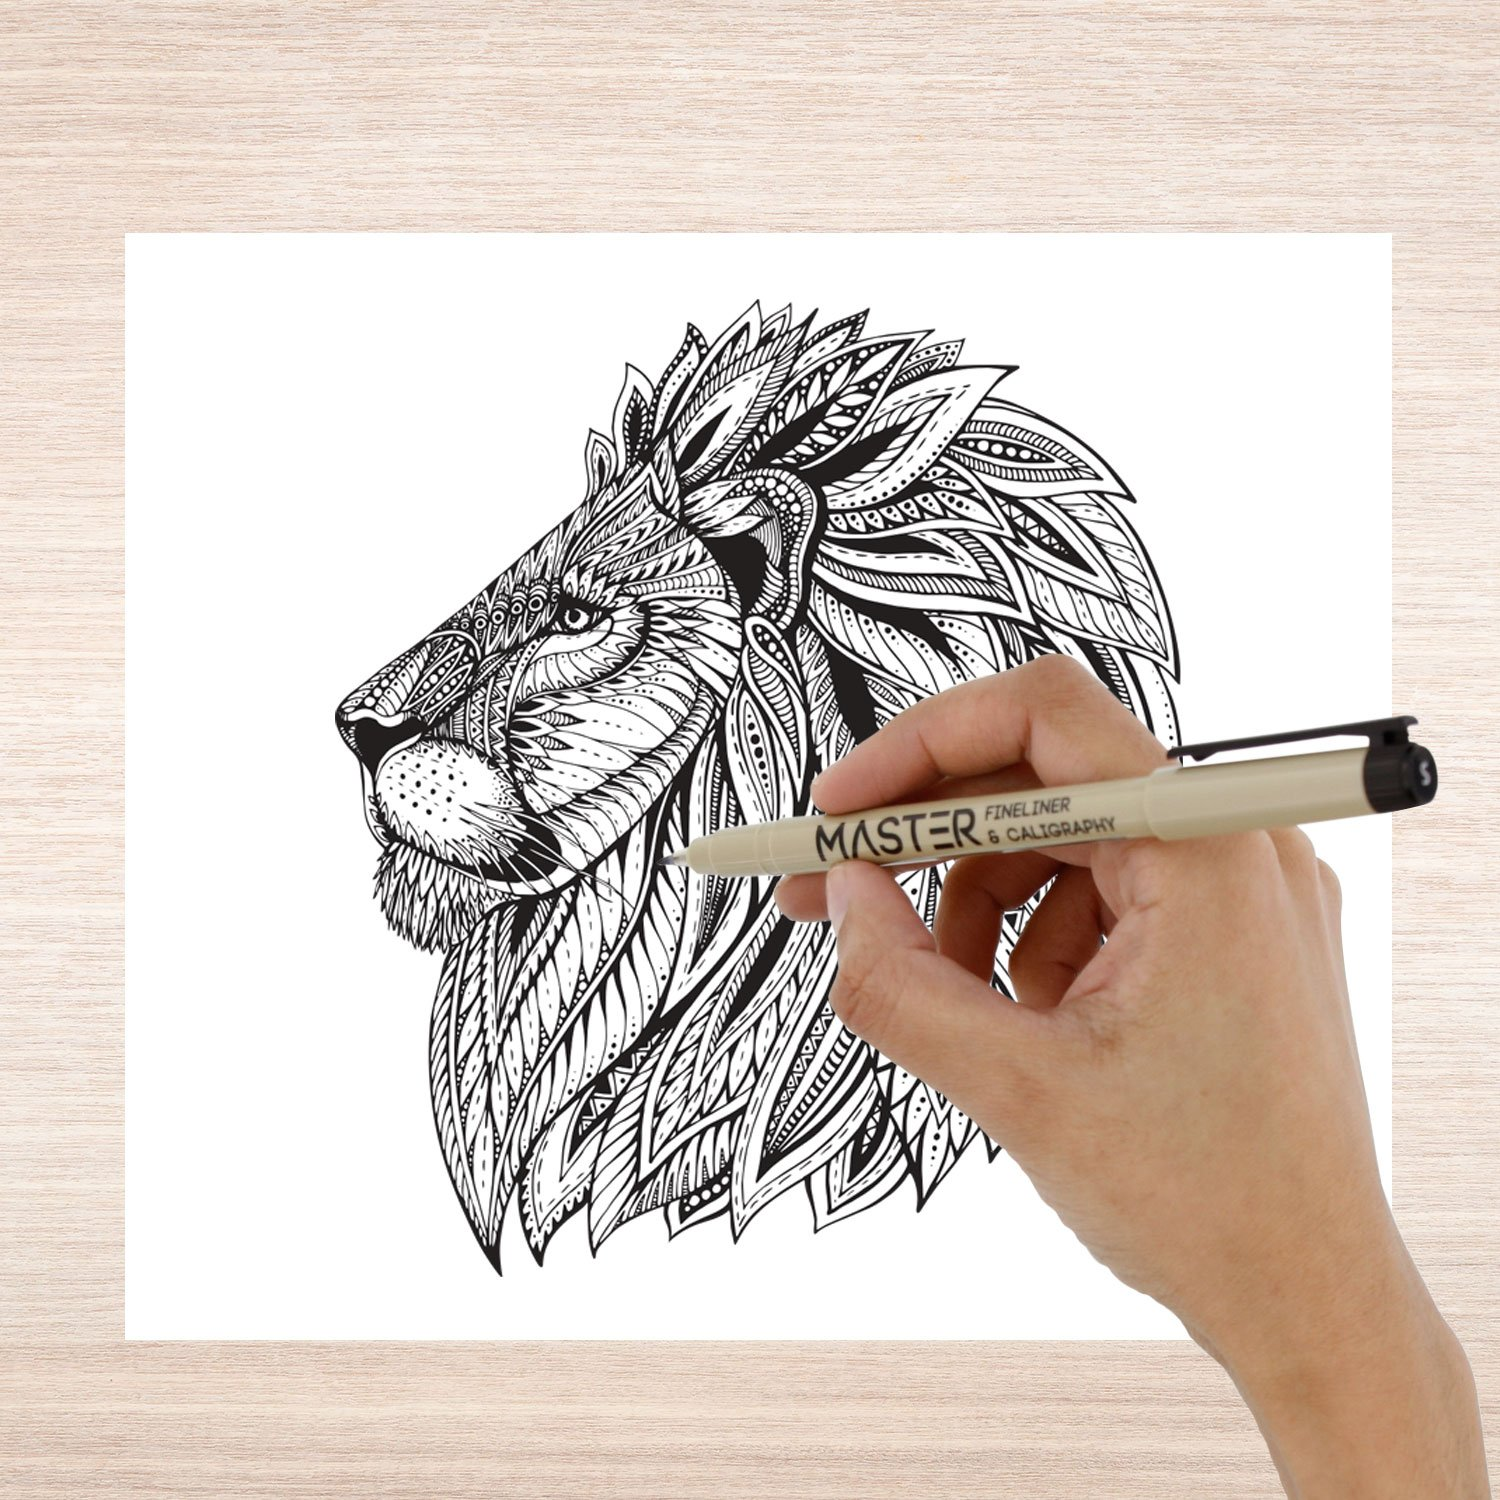 Set of 32 Unique Black and Colored Master Markers Micro-Pen Fineliner Ink Pens - 11 Vibrant Colors & 21 Black Micro Fine Point, Chisel, Brush & Calligraphy Tip Nibs - Artist Illustration Drawing by Mastermarkers (Image #6)